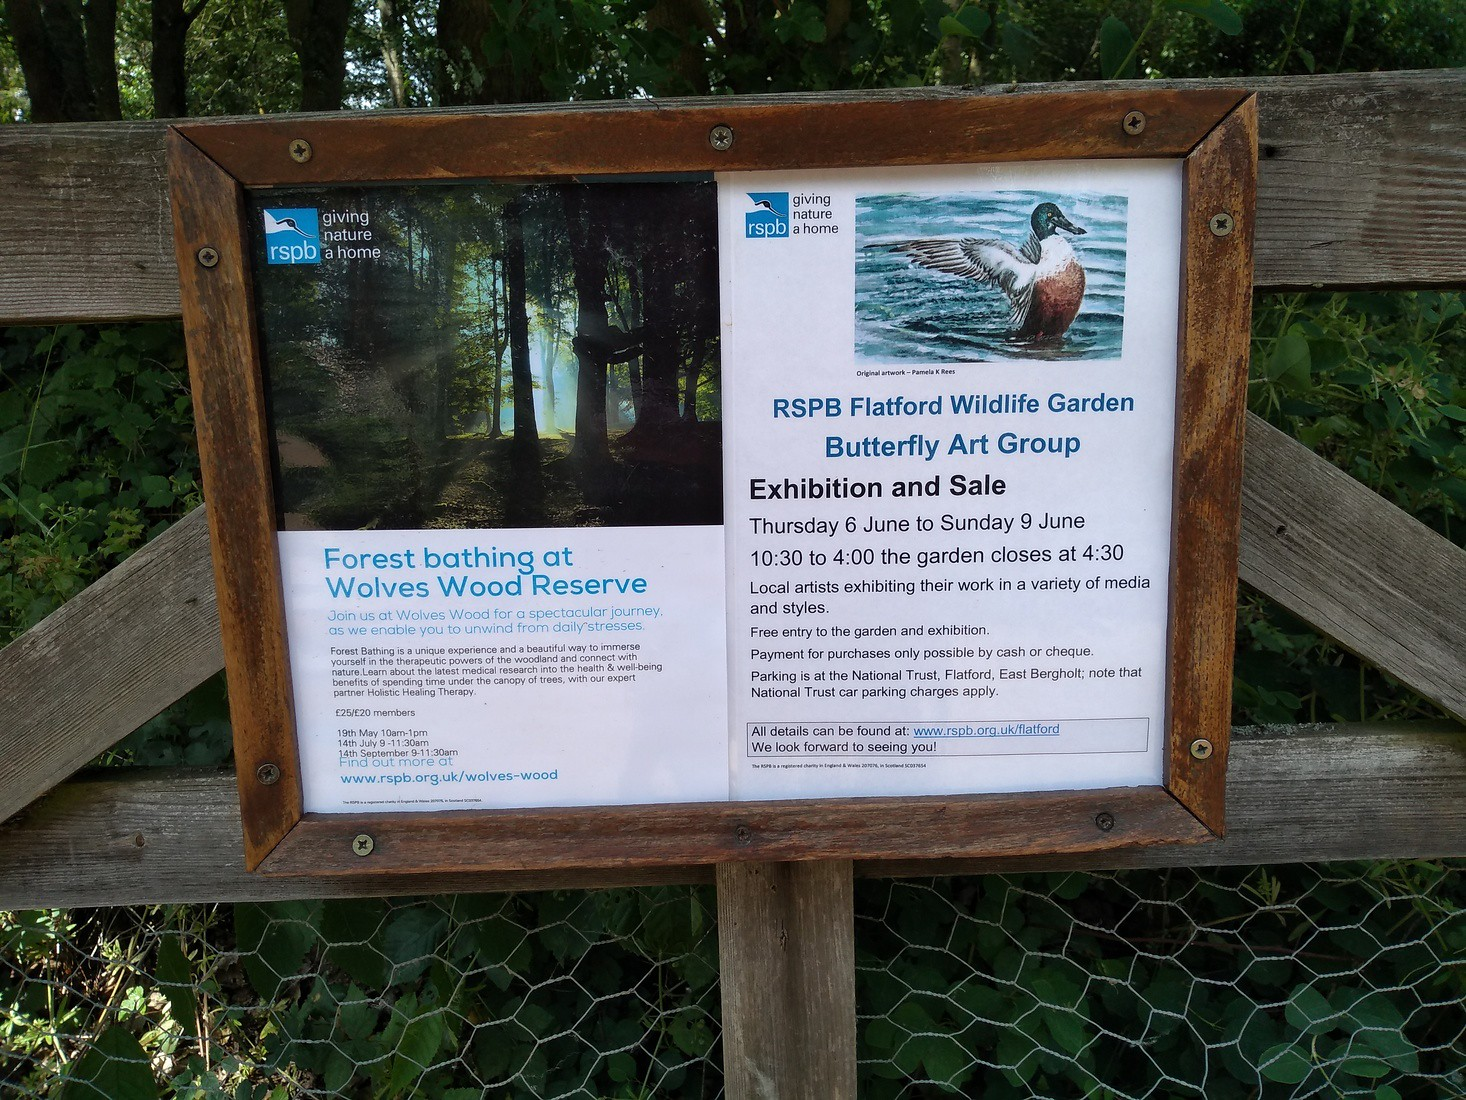 RSPB and Forest Bathing Coincidentally